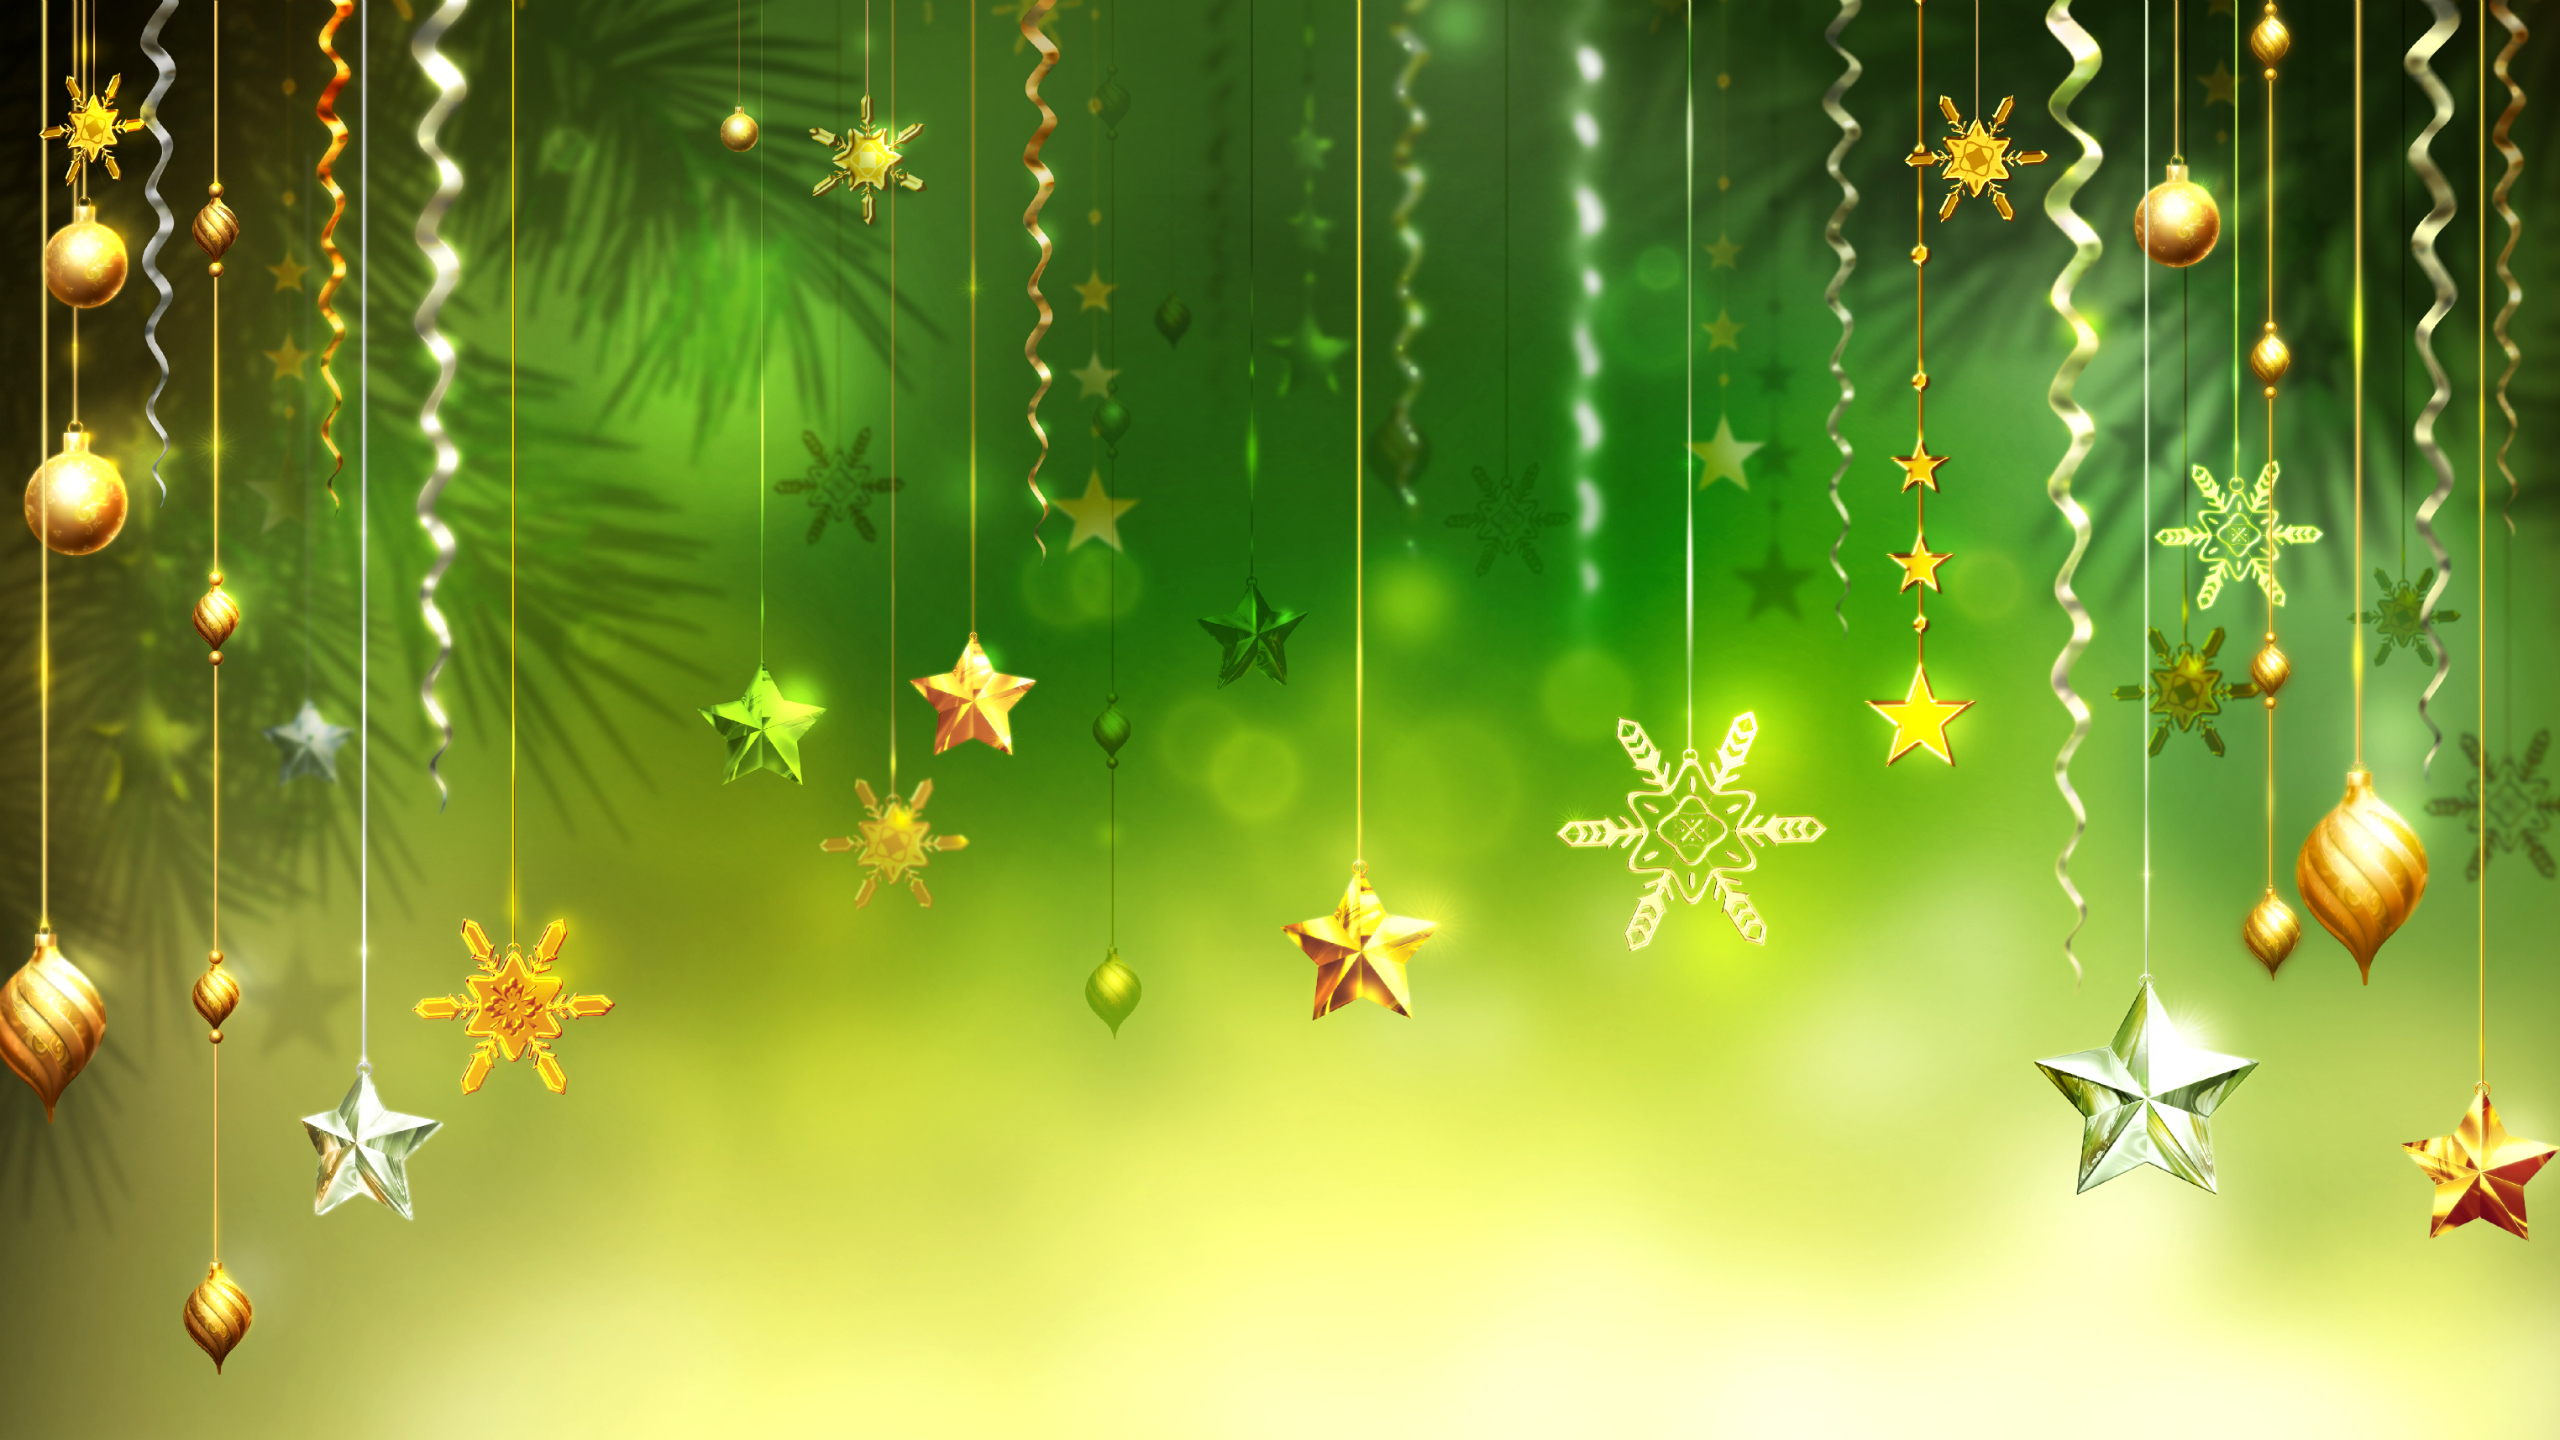 Christmas images Merry Christmas HD wallpaper and background photos